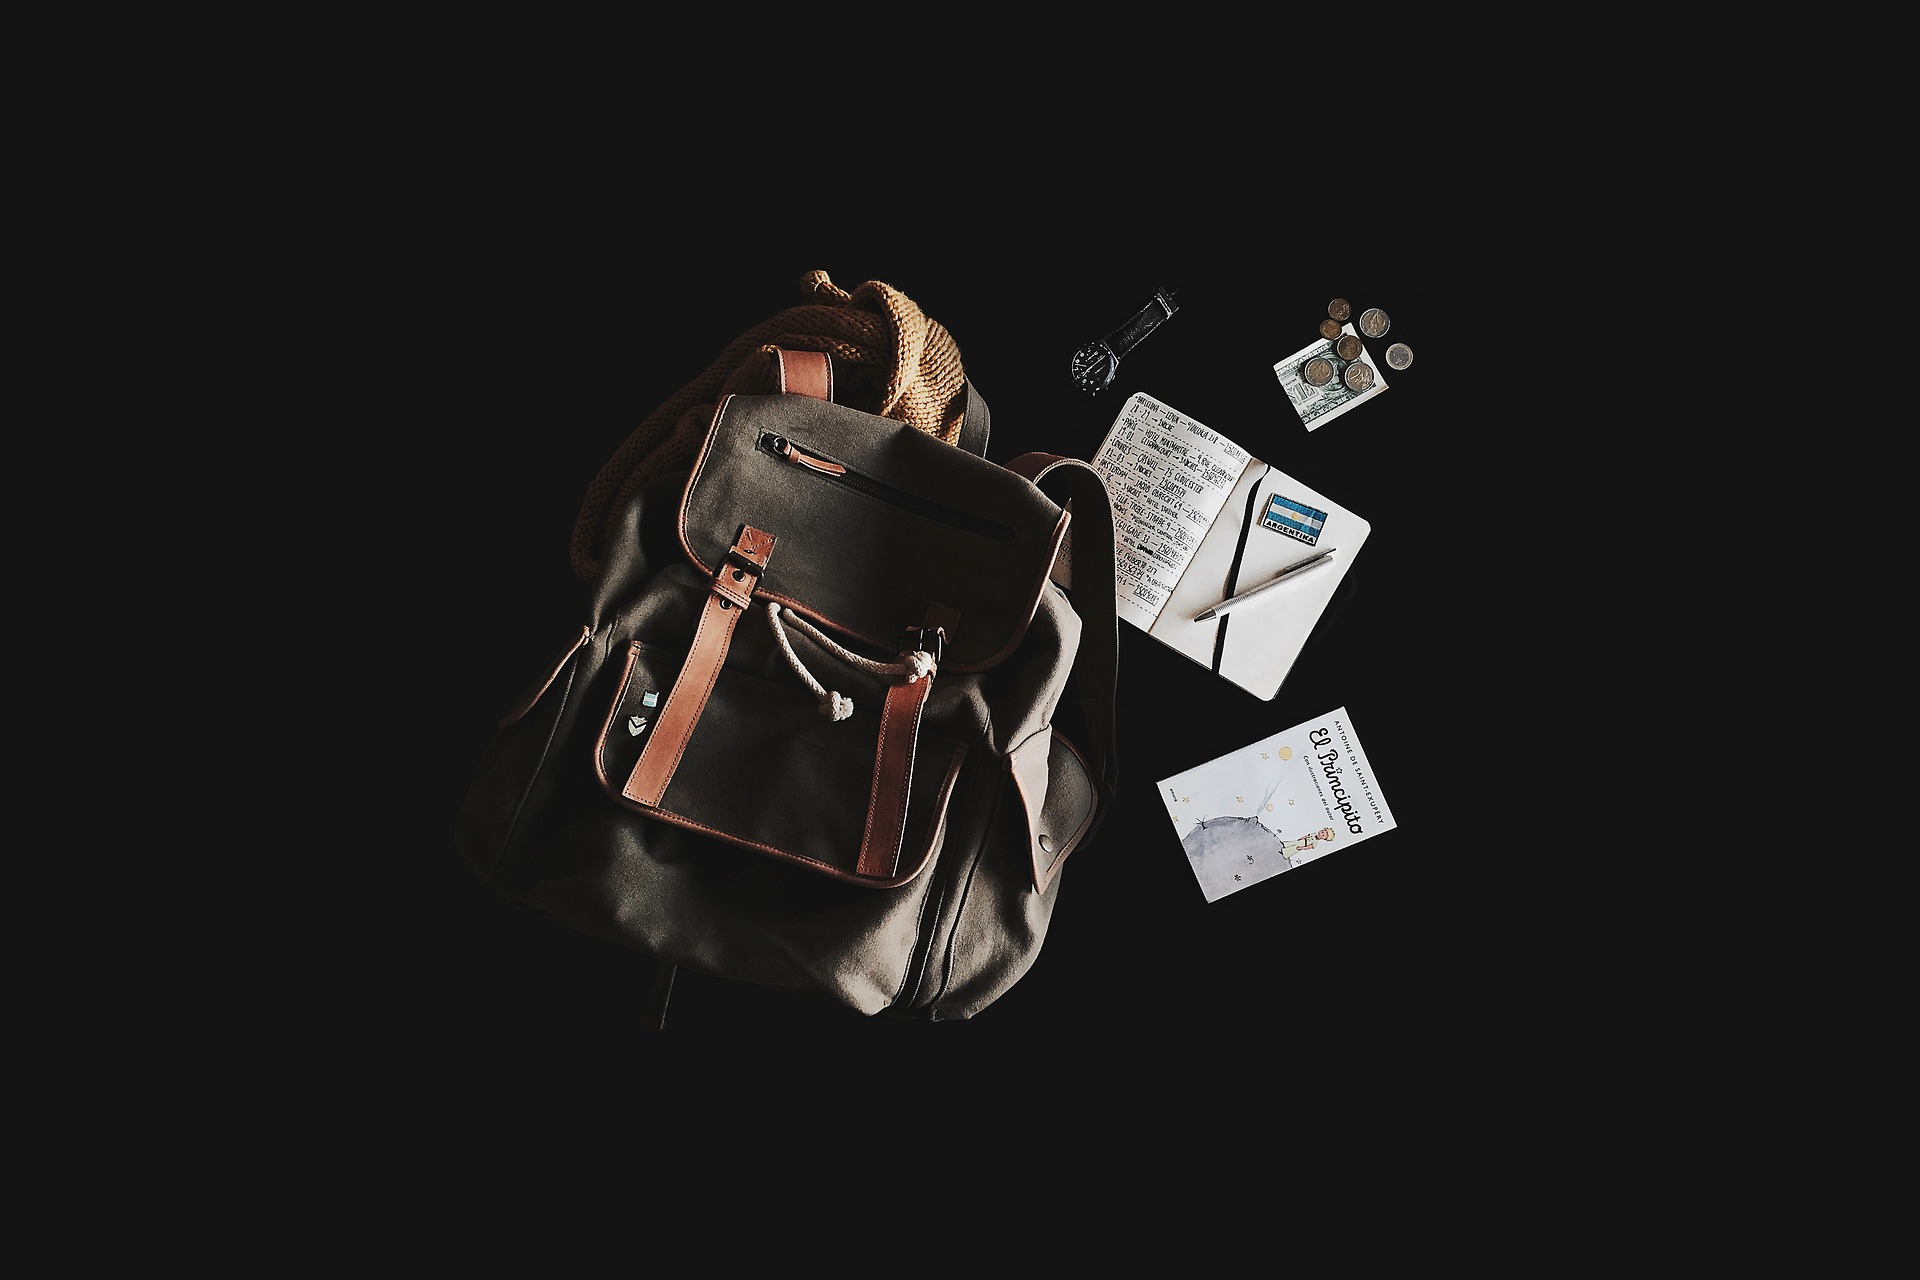 backpack-1839705_1920